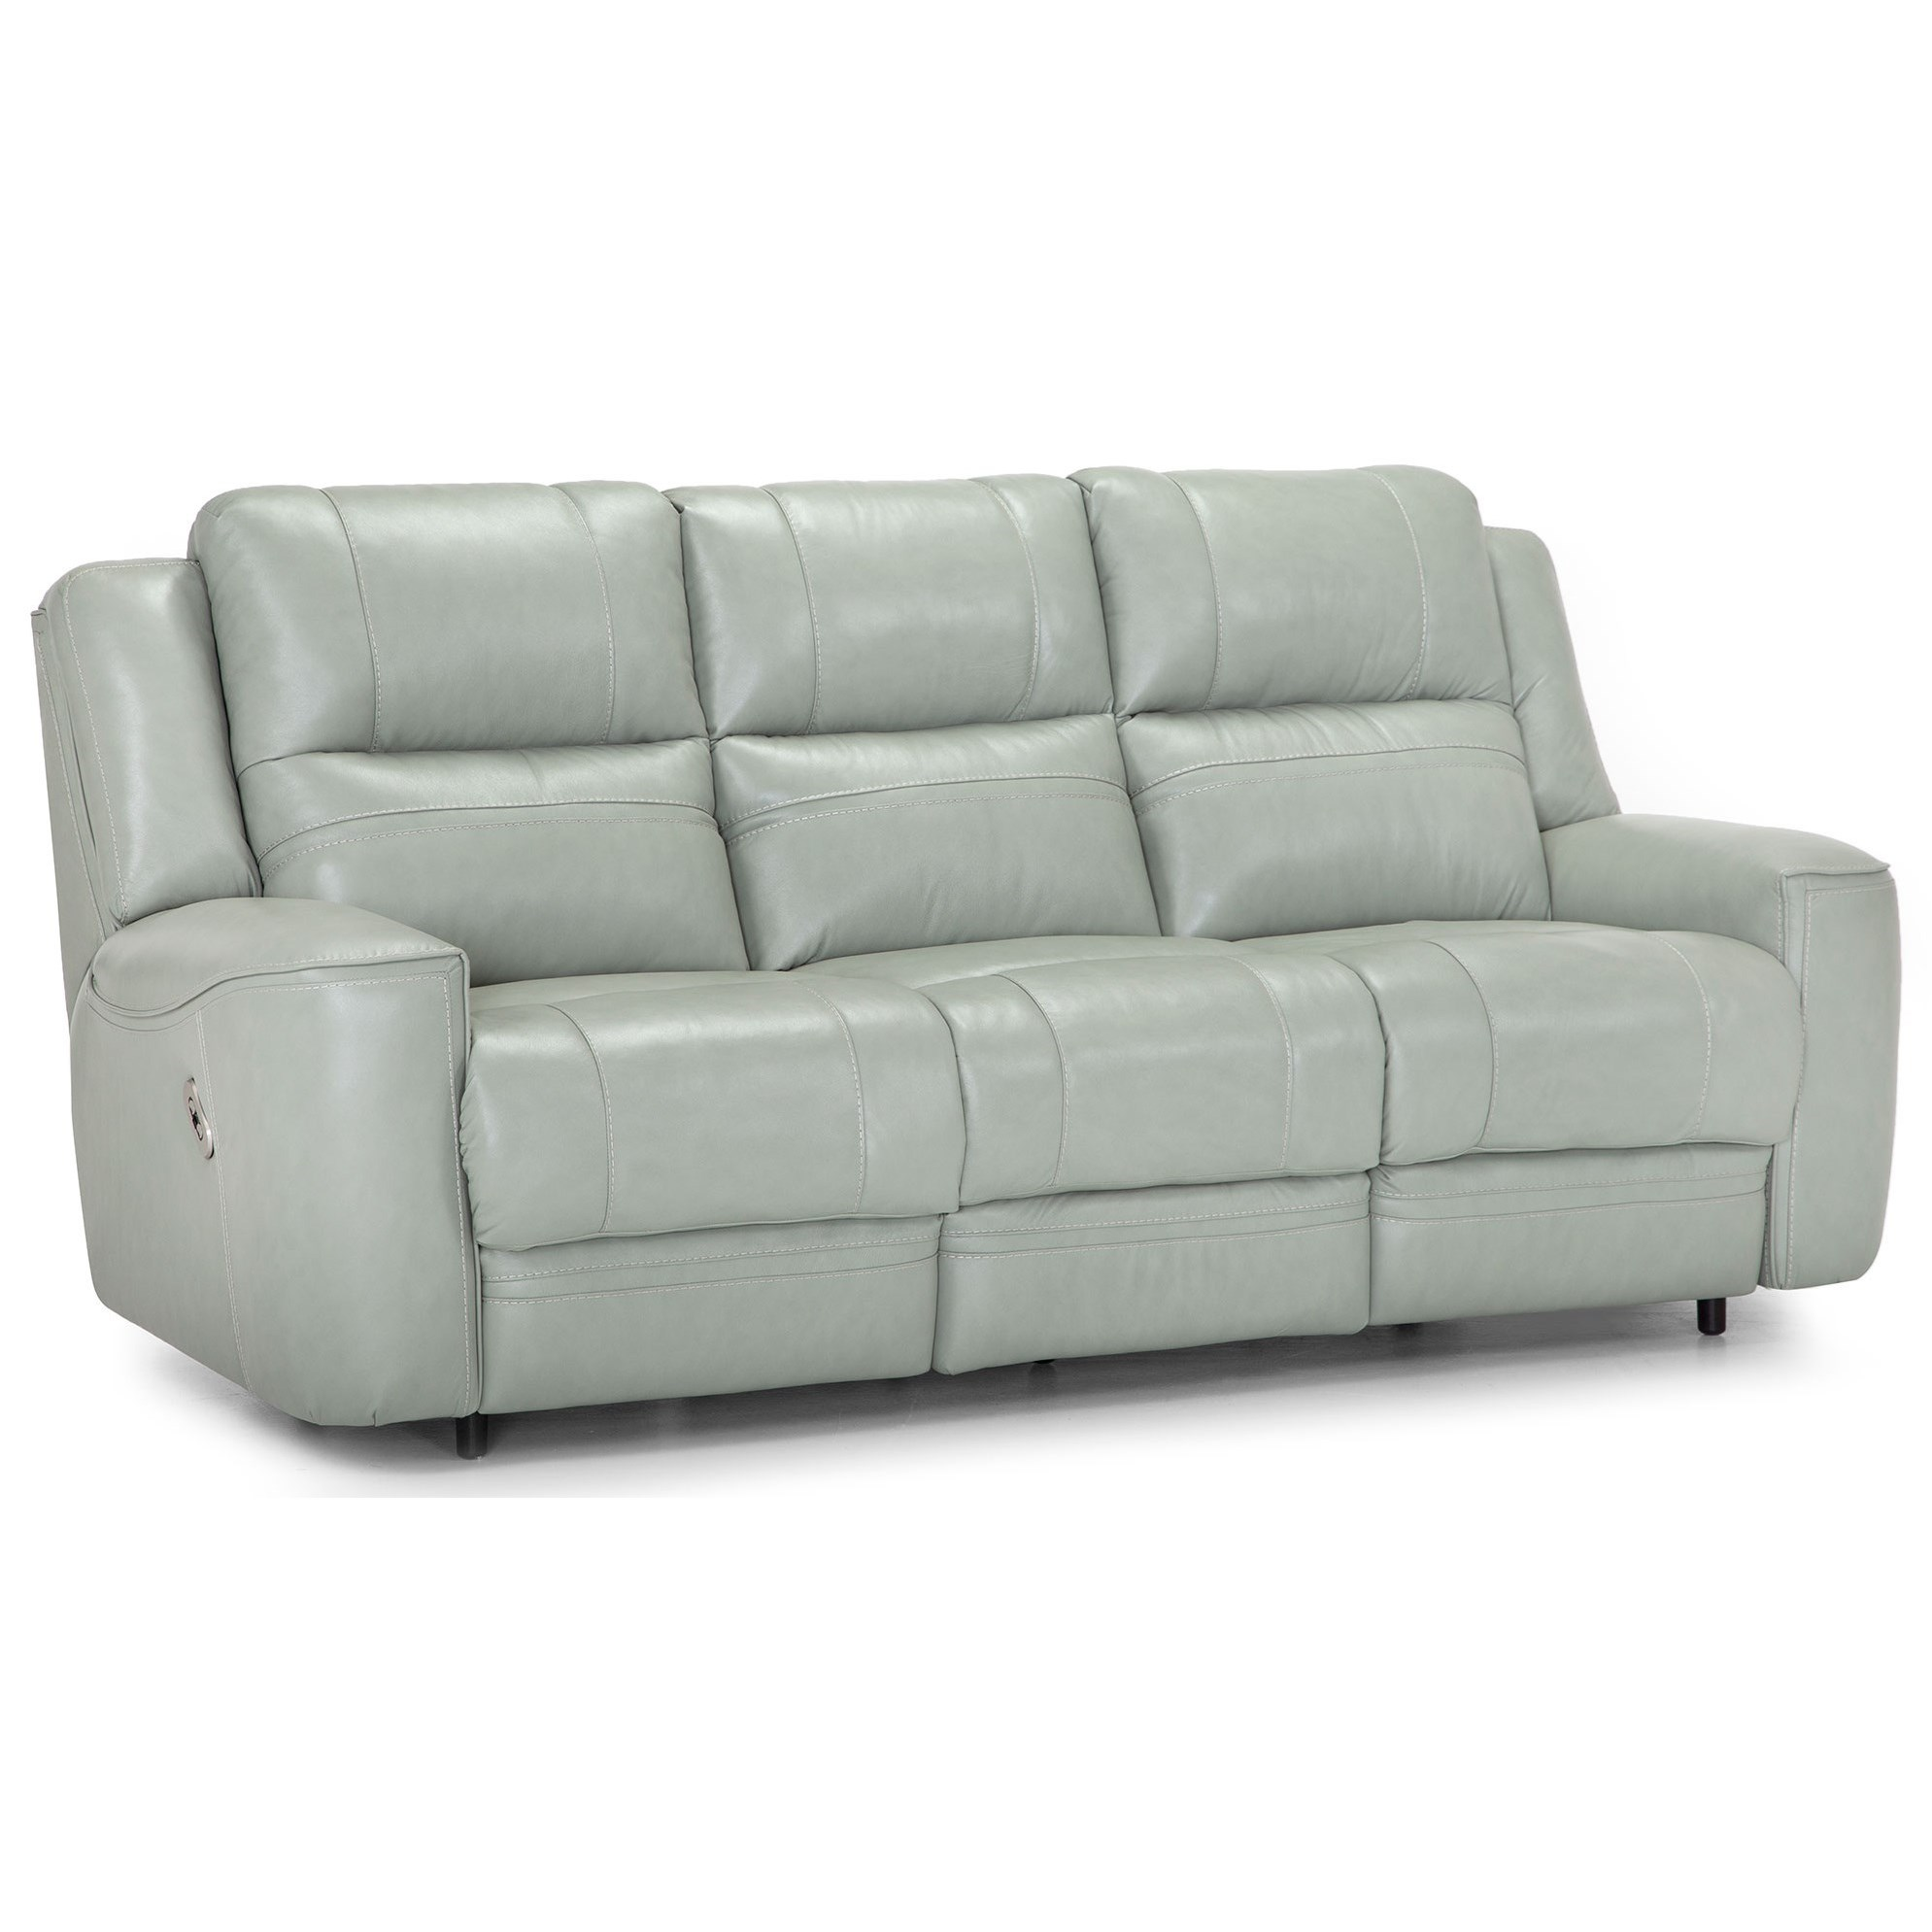 Dual Power Reclining Sofa with USB Port